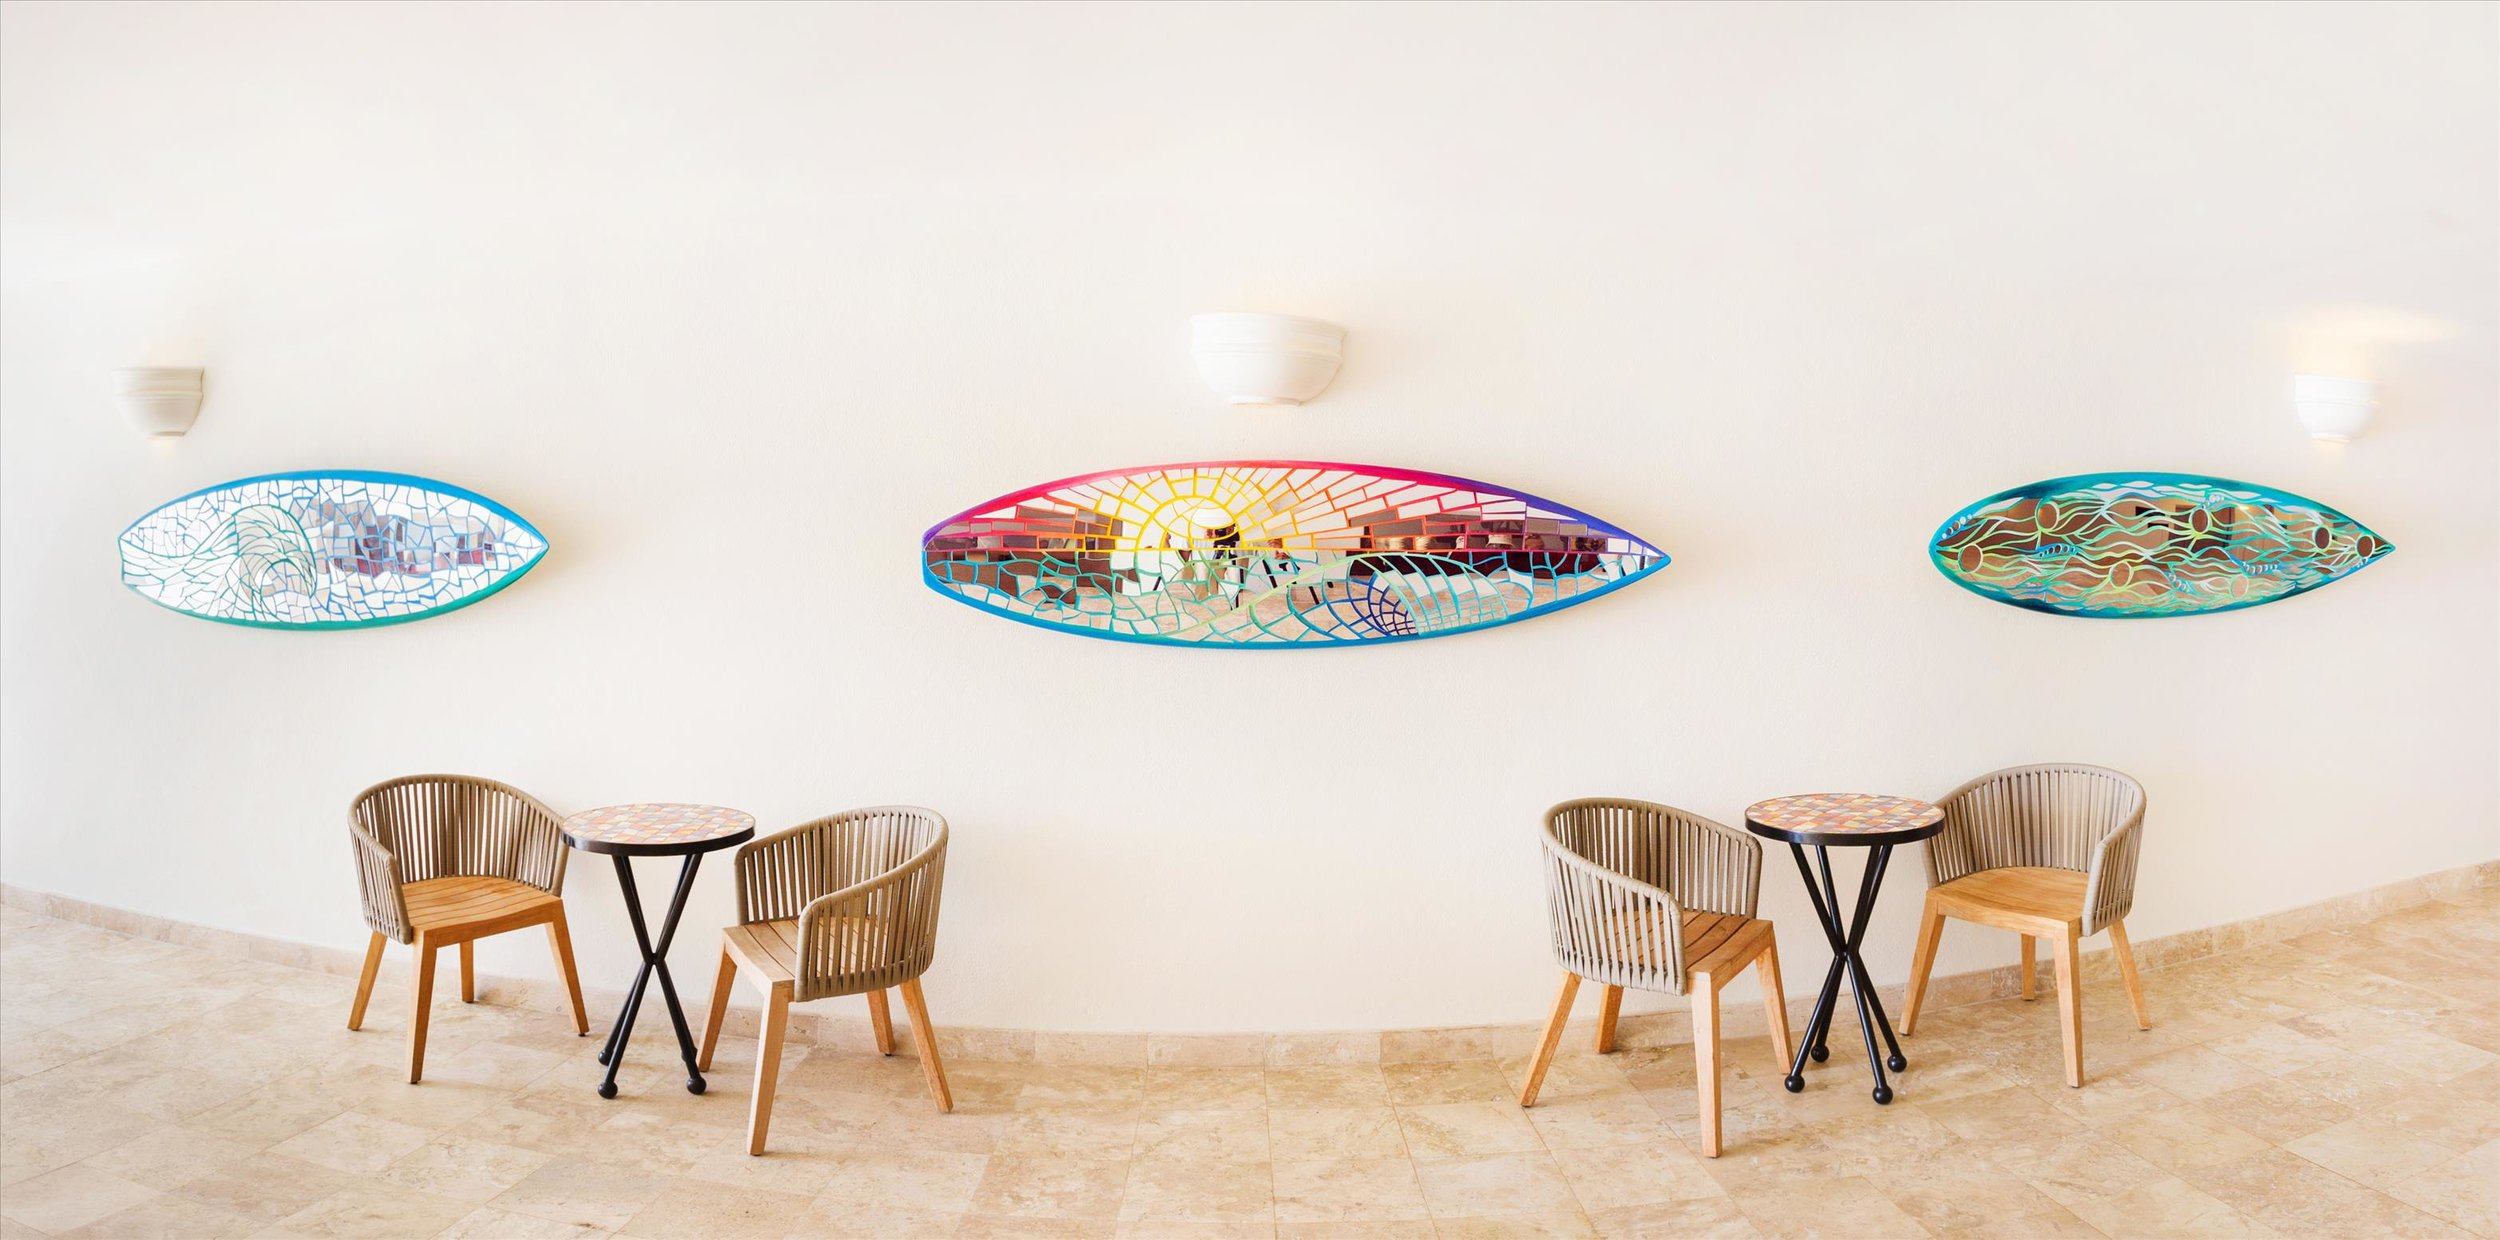 HILTON, LOS CABOS - Curated by Indiewalls